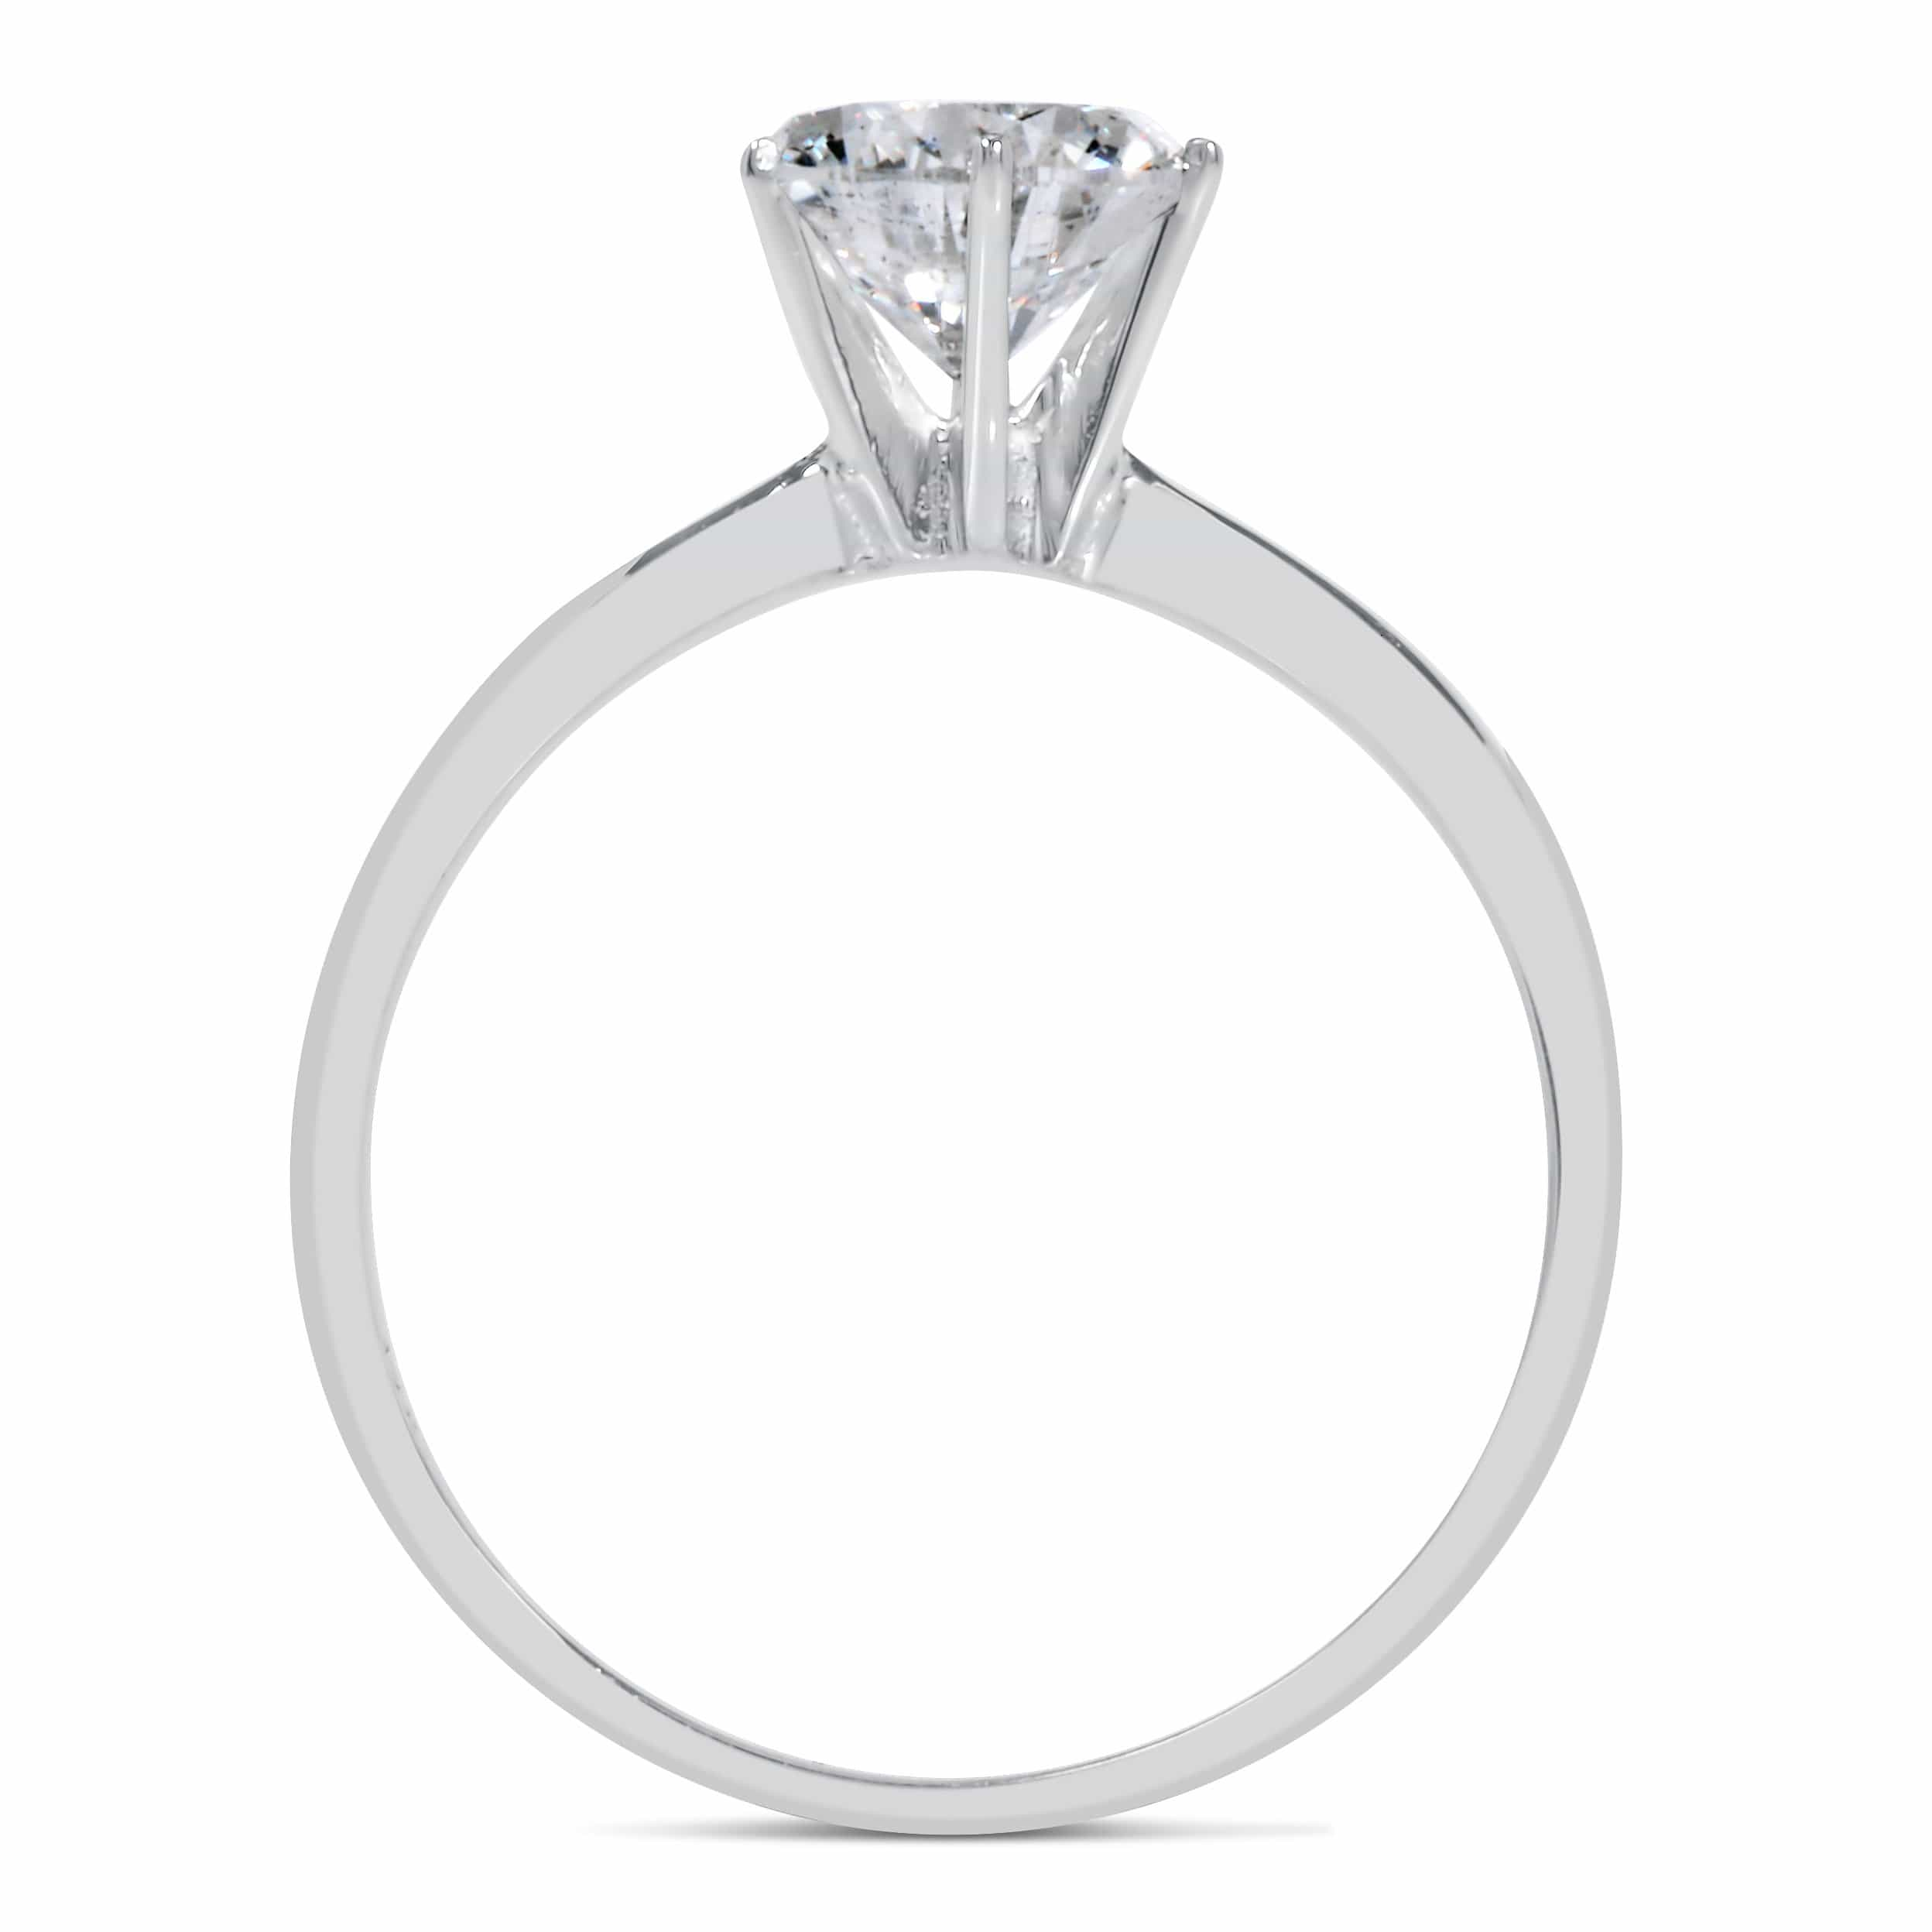 1 ct Round Cut Diamond Engagement Ring